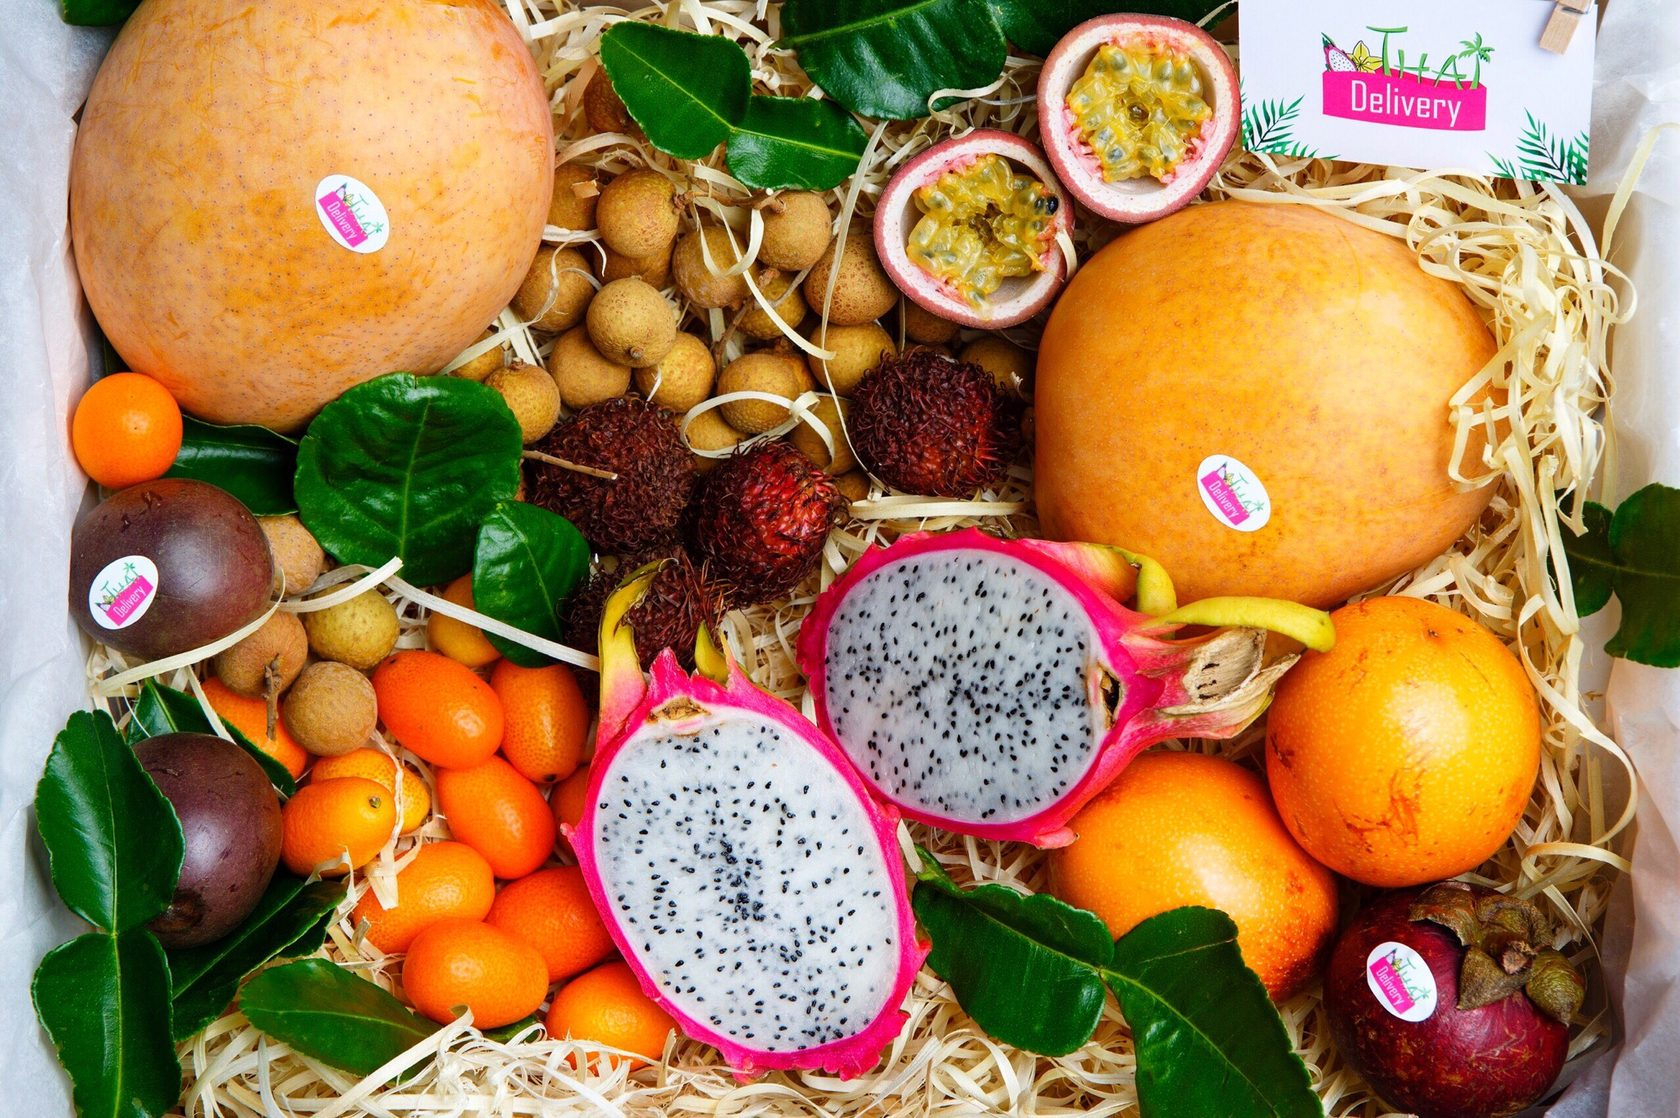 <p>Tropical-themed products required:</p>  <p>We buy tropical: fruits, berries, vegetables, herbs, mushrooms and more.</p>  <p>The priority is various kinds of frozen exotic and everything connected with it.</p>  <p>Interested in small wholesale with delivery to St. Petersburg and the nearest suburb.</p>  <p>The range of products offered for production and extensive retail is important.</p>  <p>We consider both packaged and weight products (in small packs and in the HoReCa format).</p>  <p>Required volumes: 1 ton per month (purchase once a week).</p>  <p>(translated from russian)</p>